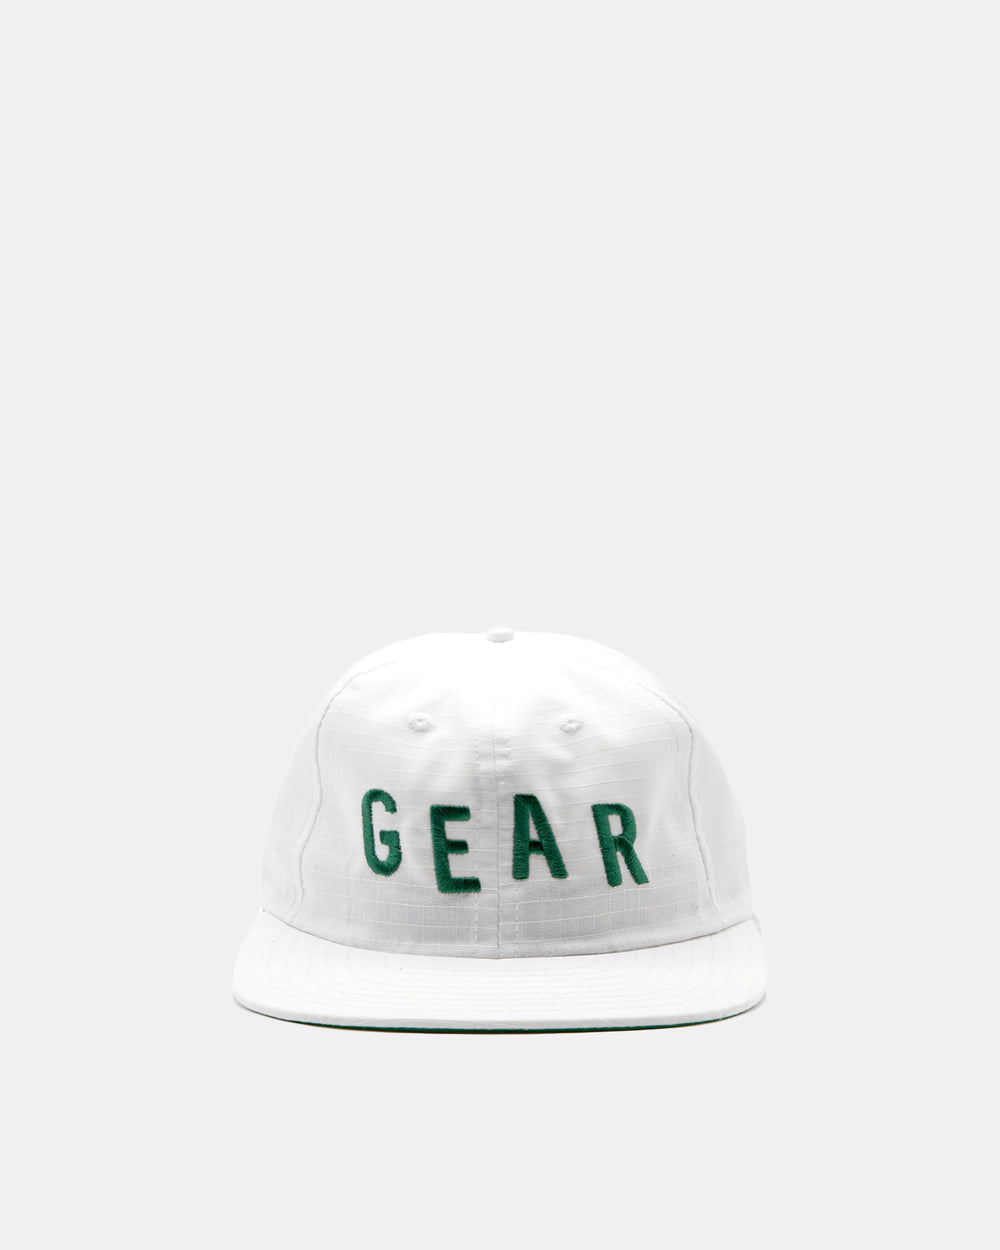 Mister Green - Gear Hat (White)